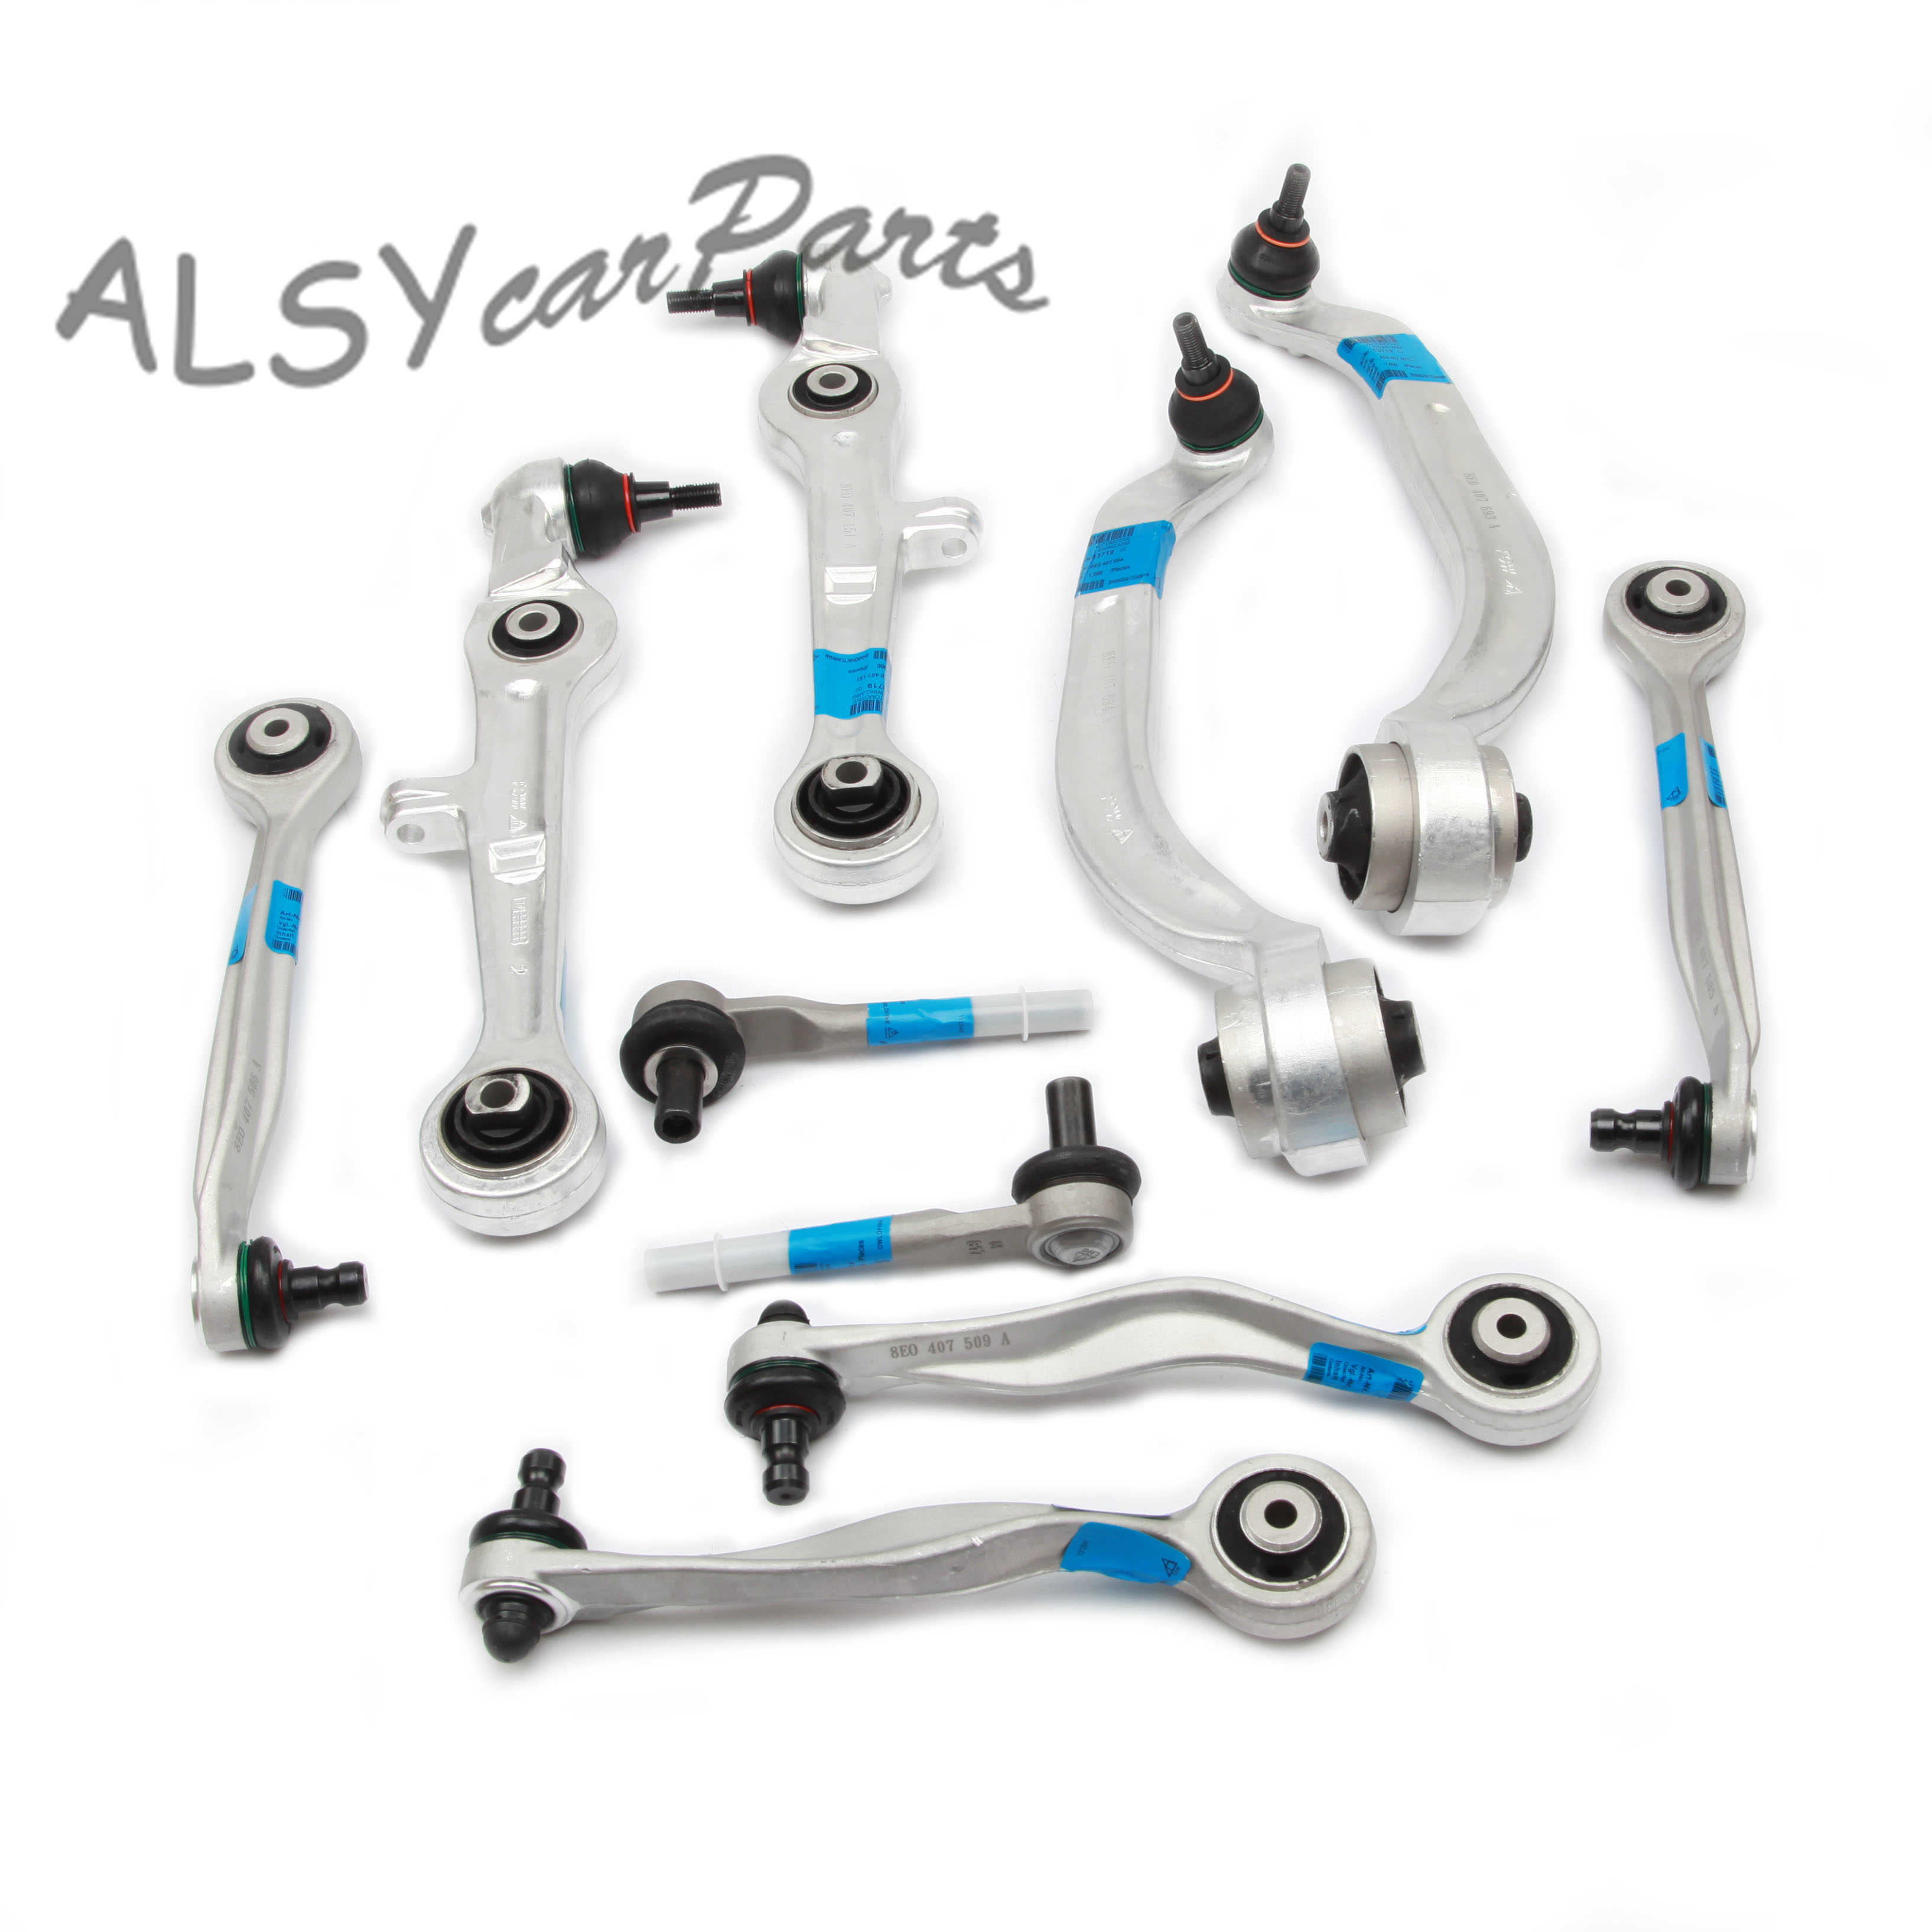 FOR MERCEDES C CLASS W203 FRONT LOWER UPPER CONTROL ARM BALL JOINT ALUMINIUM